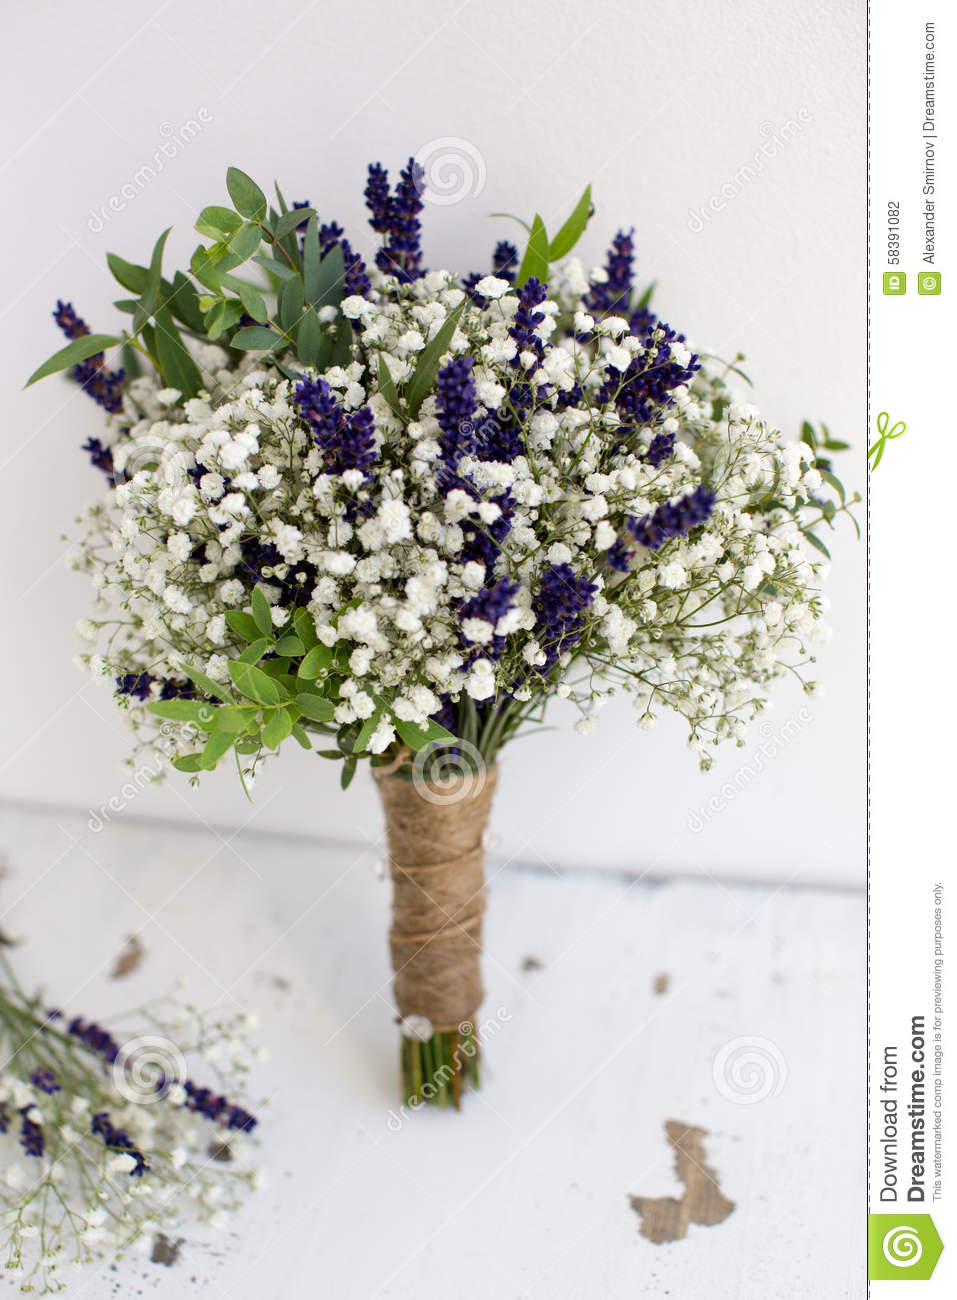 Bouquet Of Baby S Breath With Eucalyptus And Lavender Stock Photo Image Of Flower Limonium 58391082